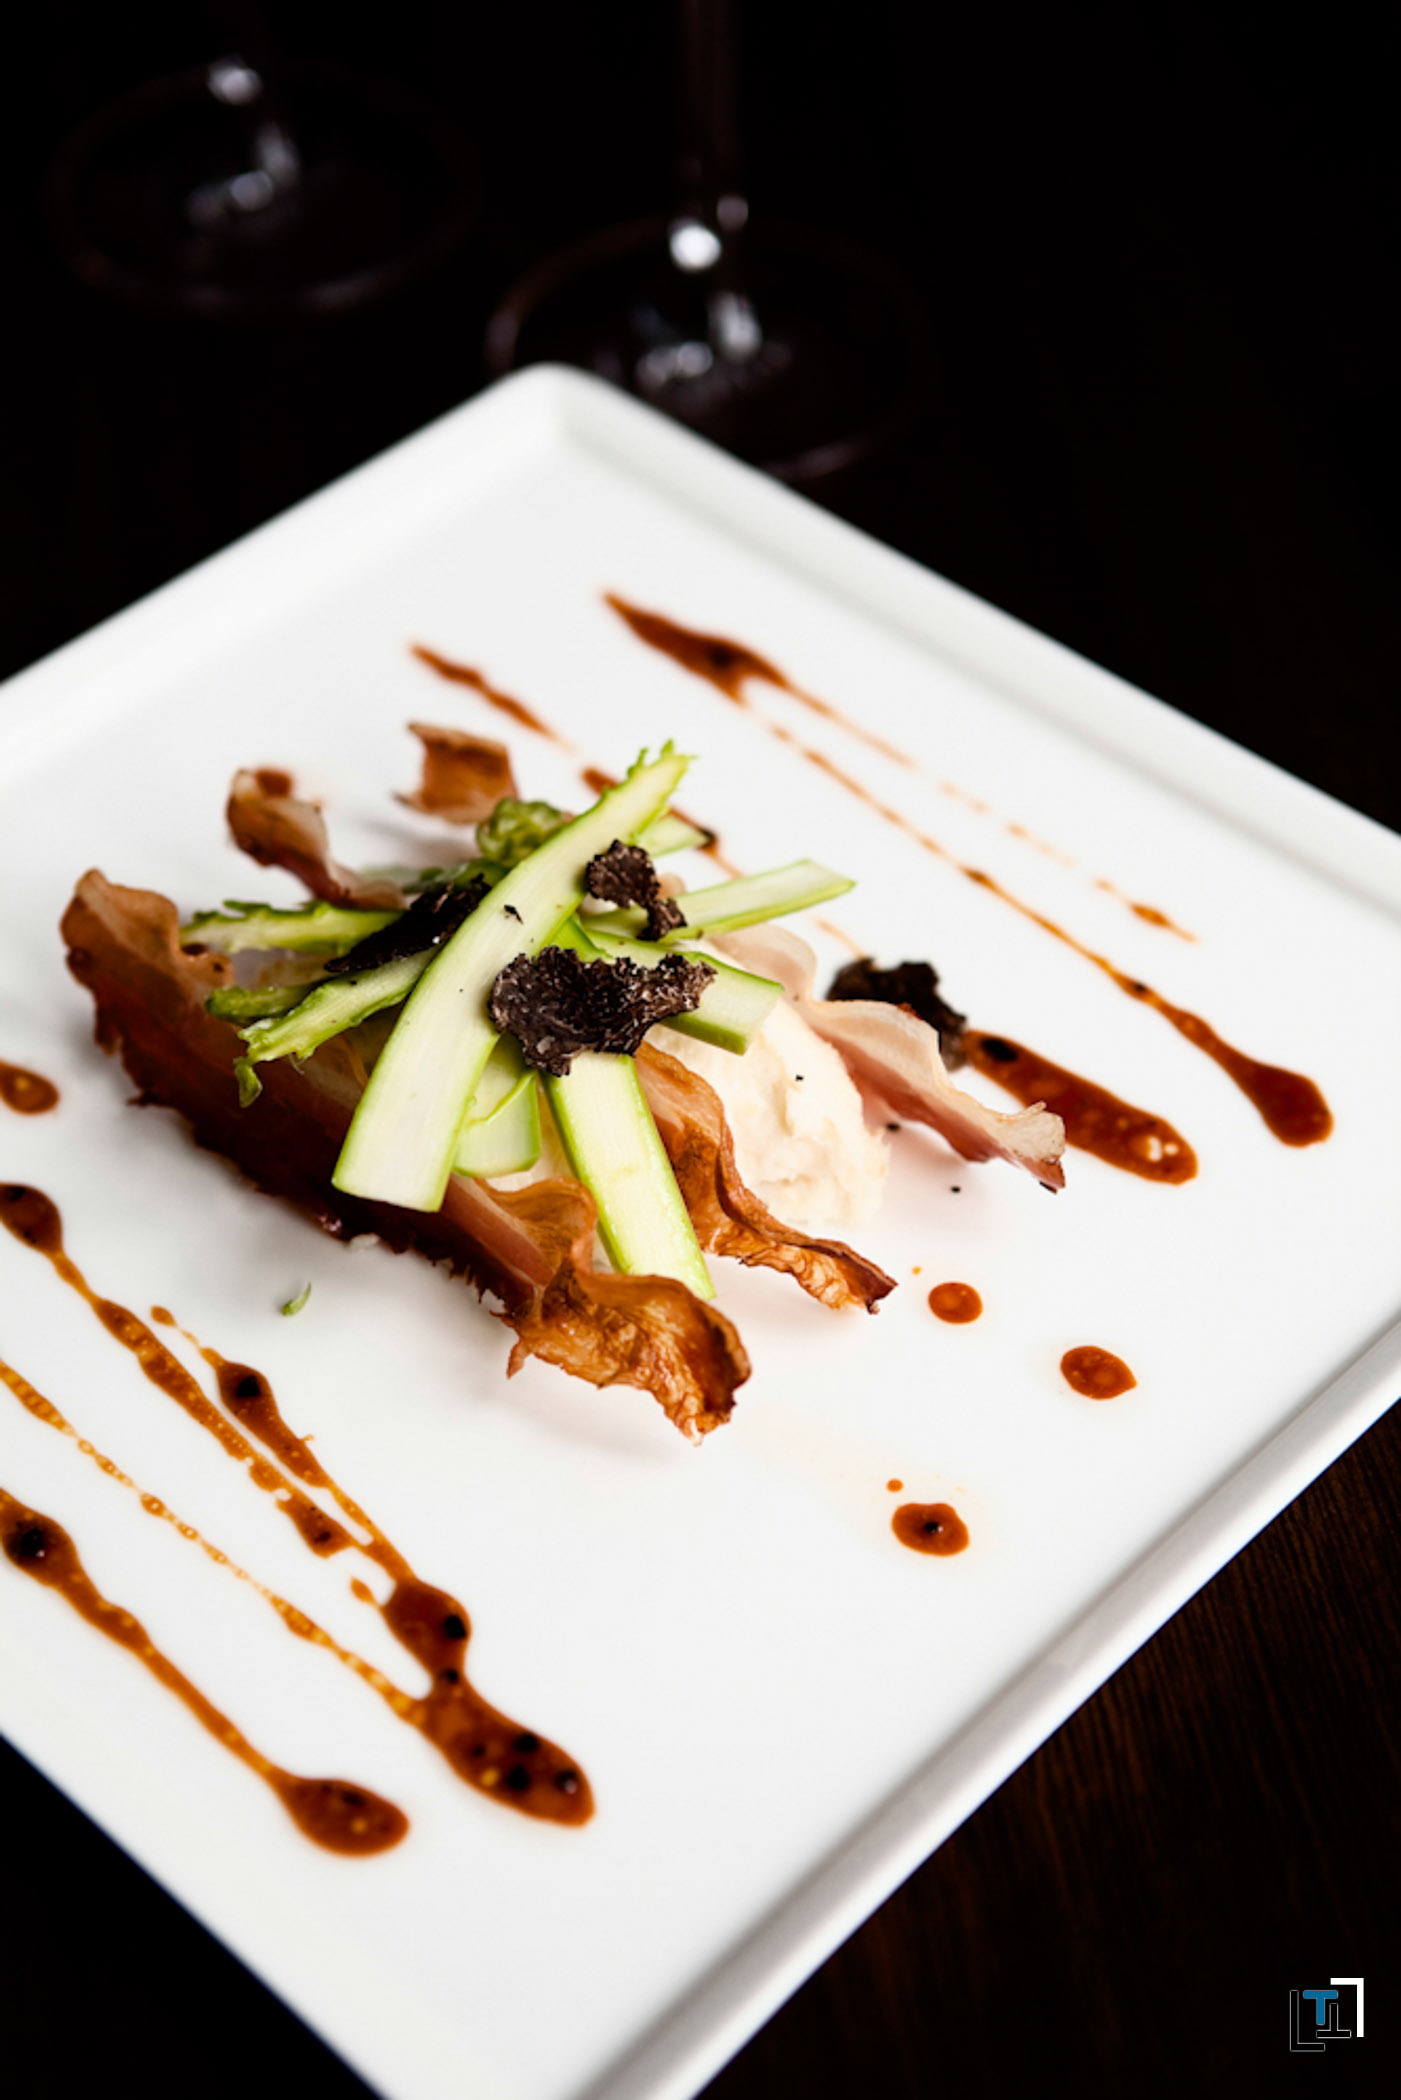 TTL Food photographies